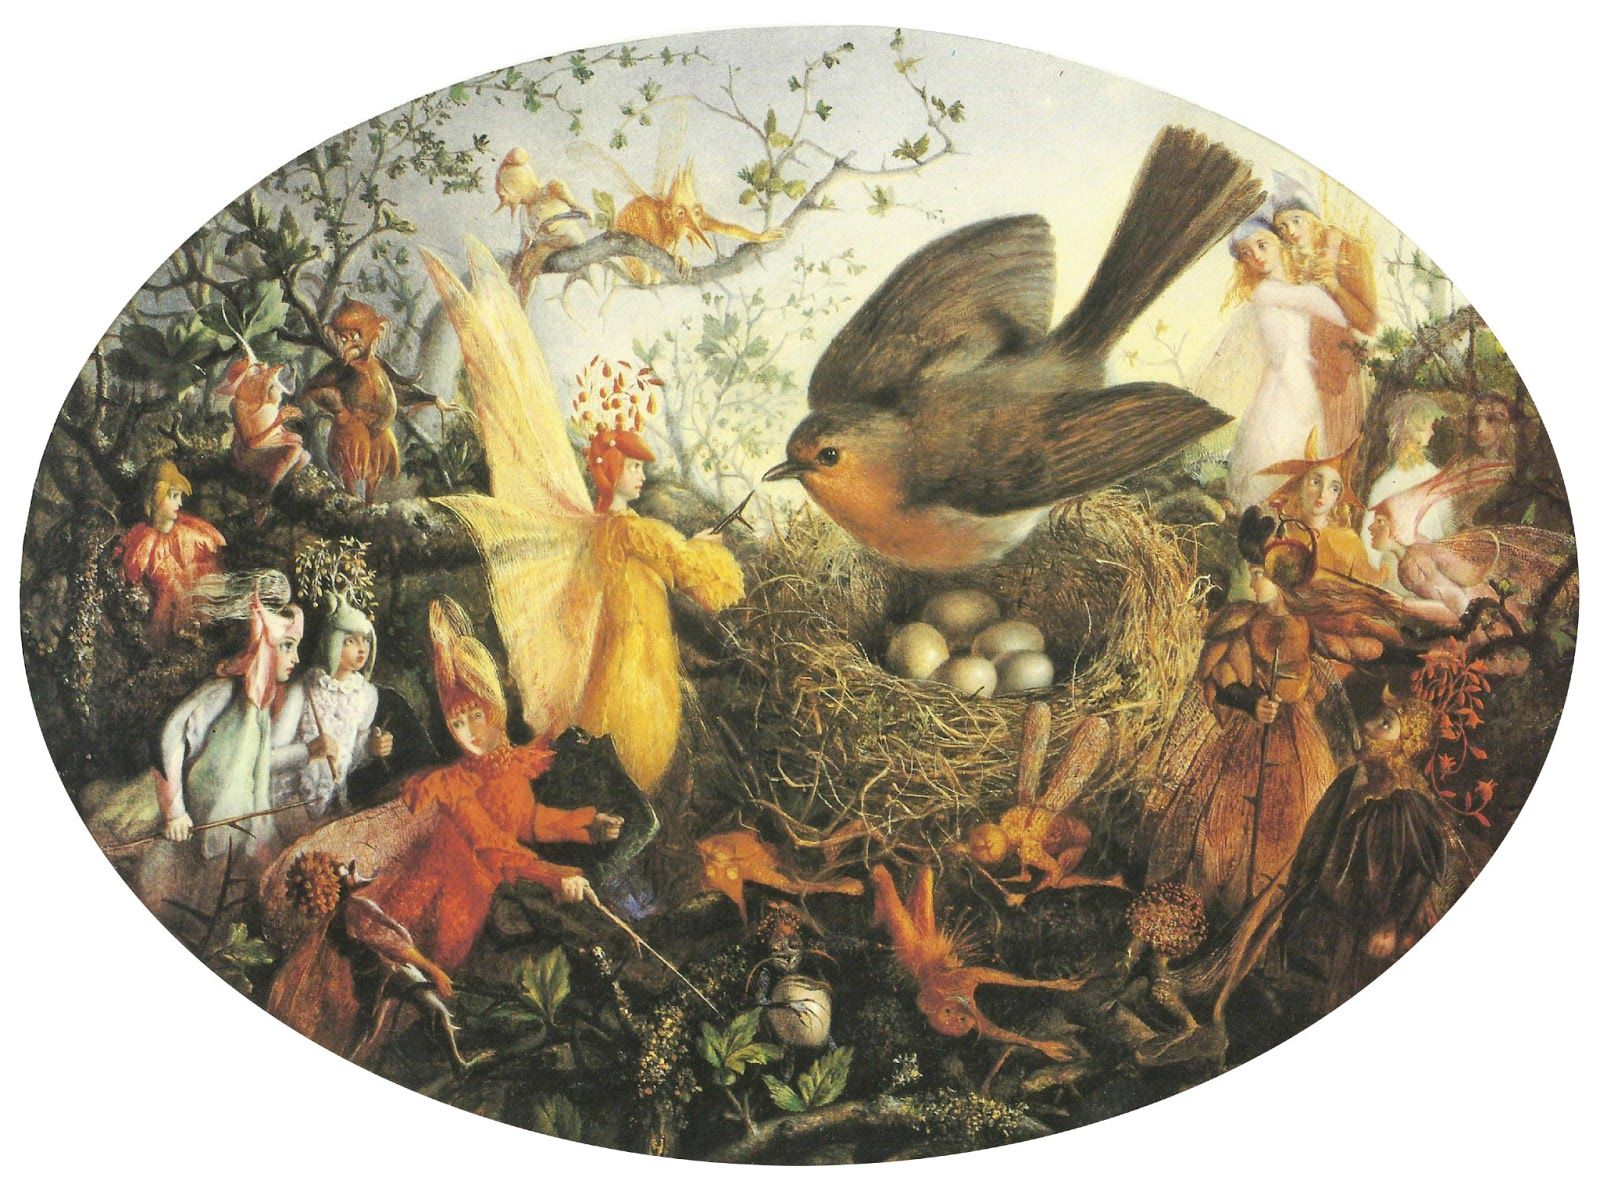 'Cock robin defending his nest' by John Anster Fitzgerald.